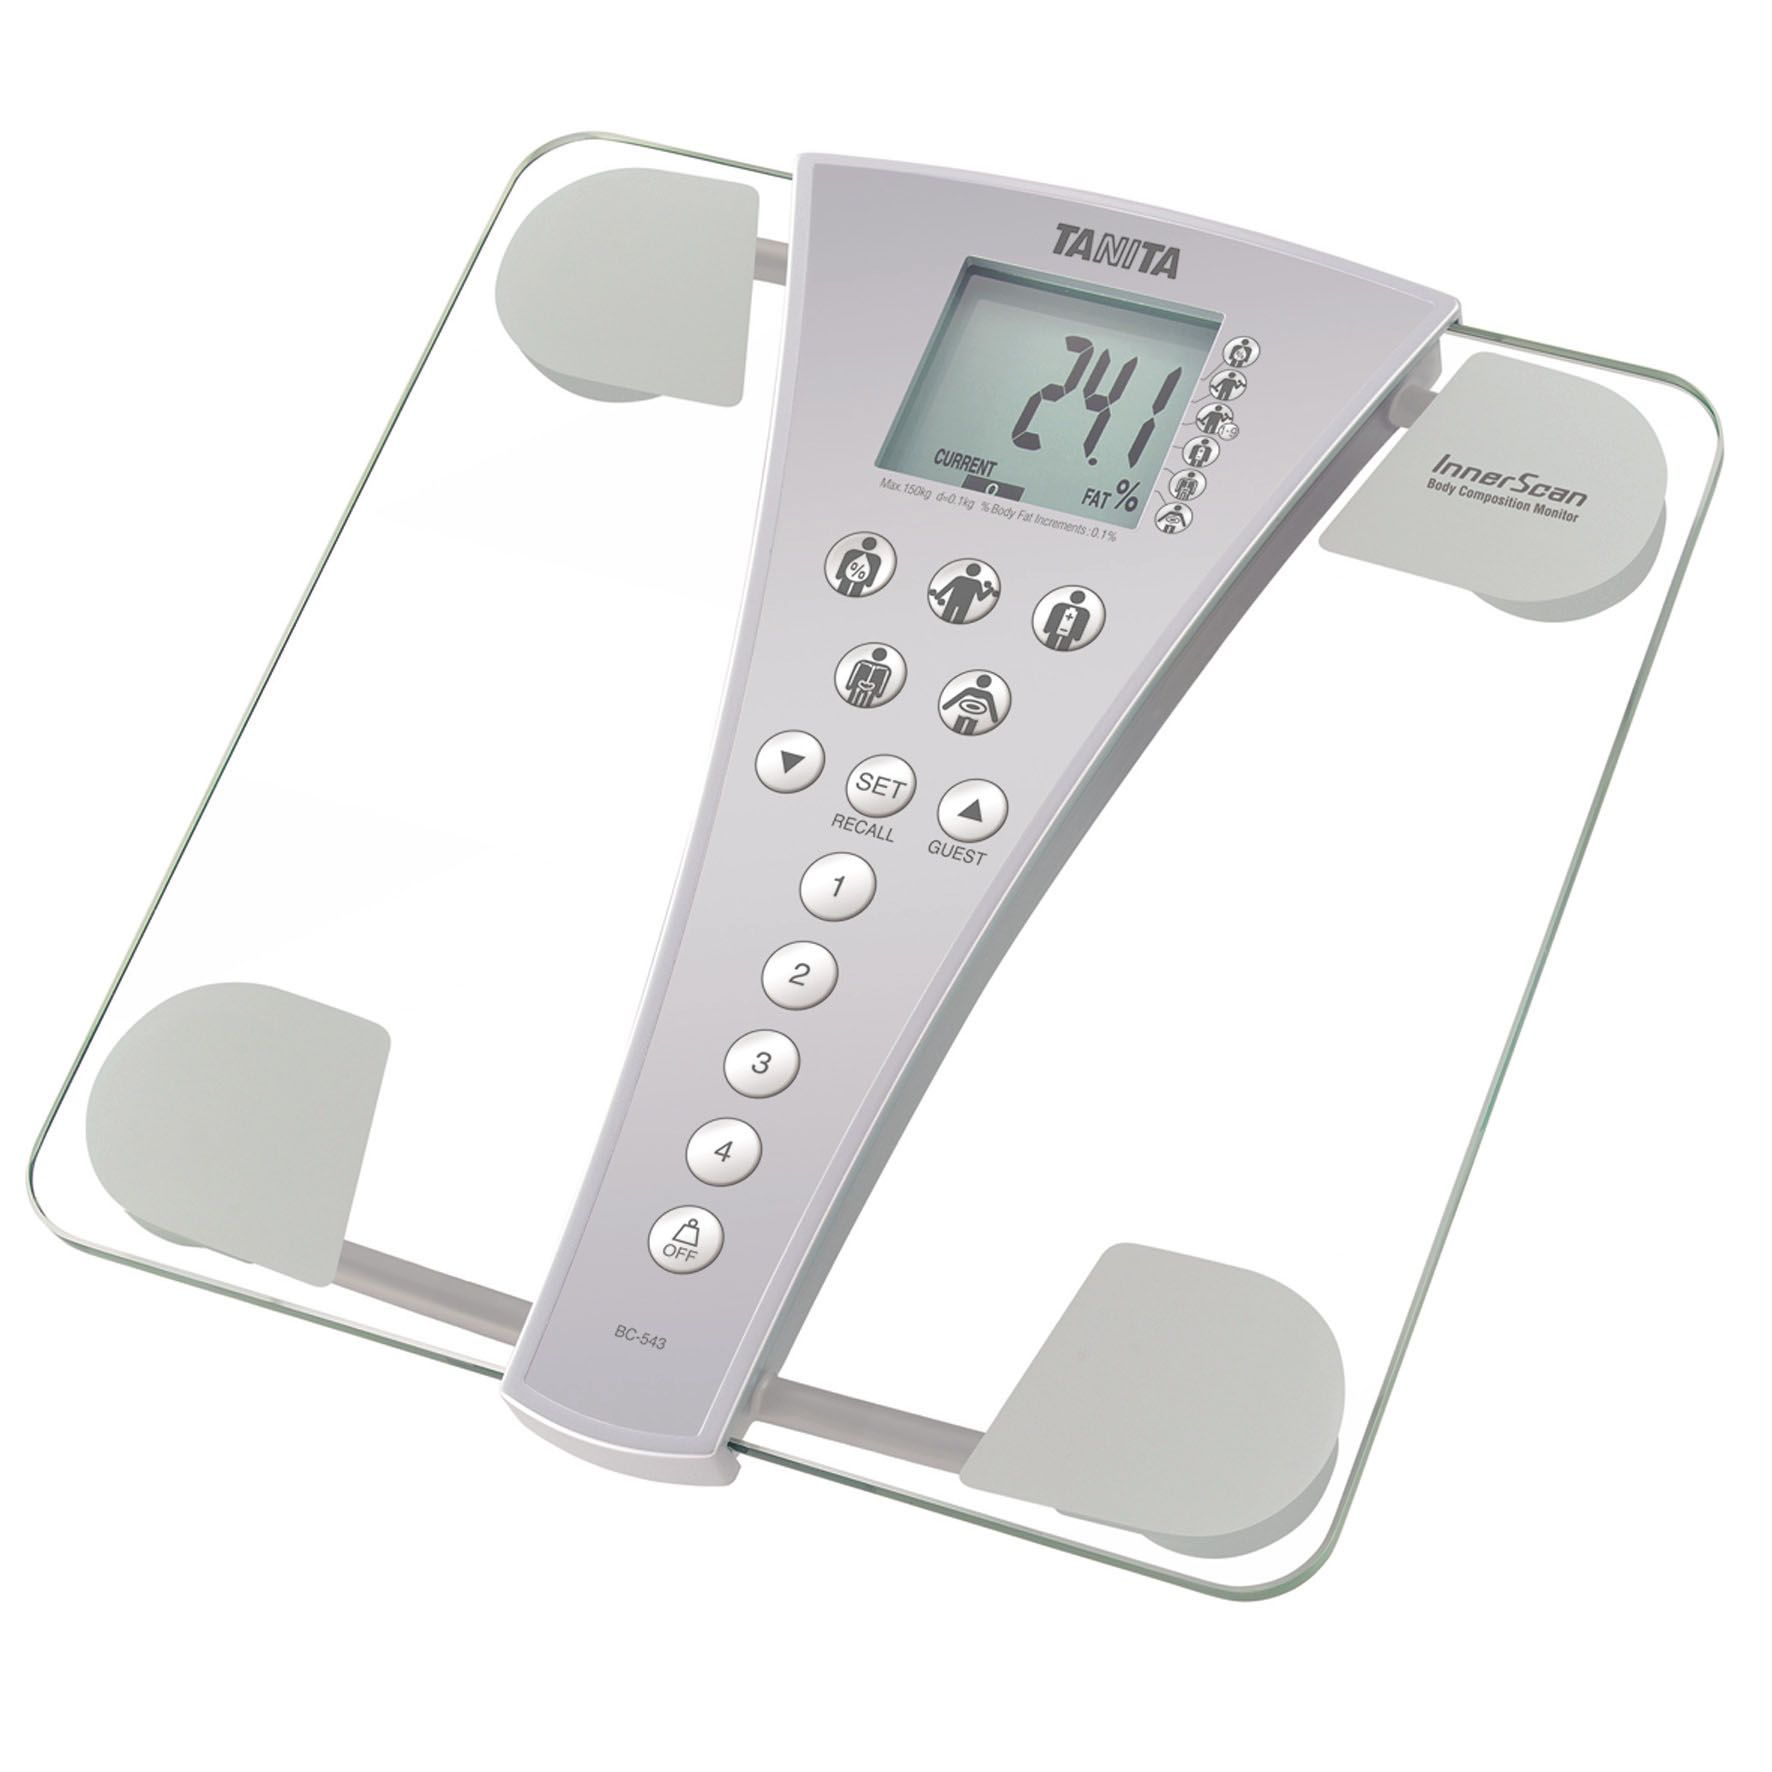 Tanita Tanita BC-543 Family Health Innerscan Body Composition Monitor, Clear